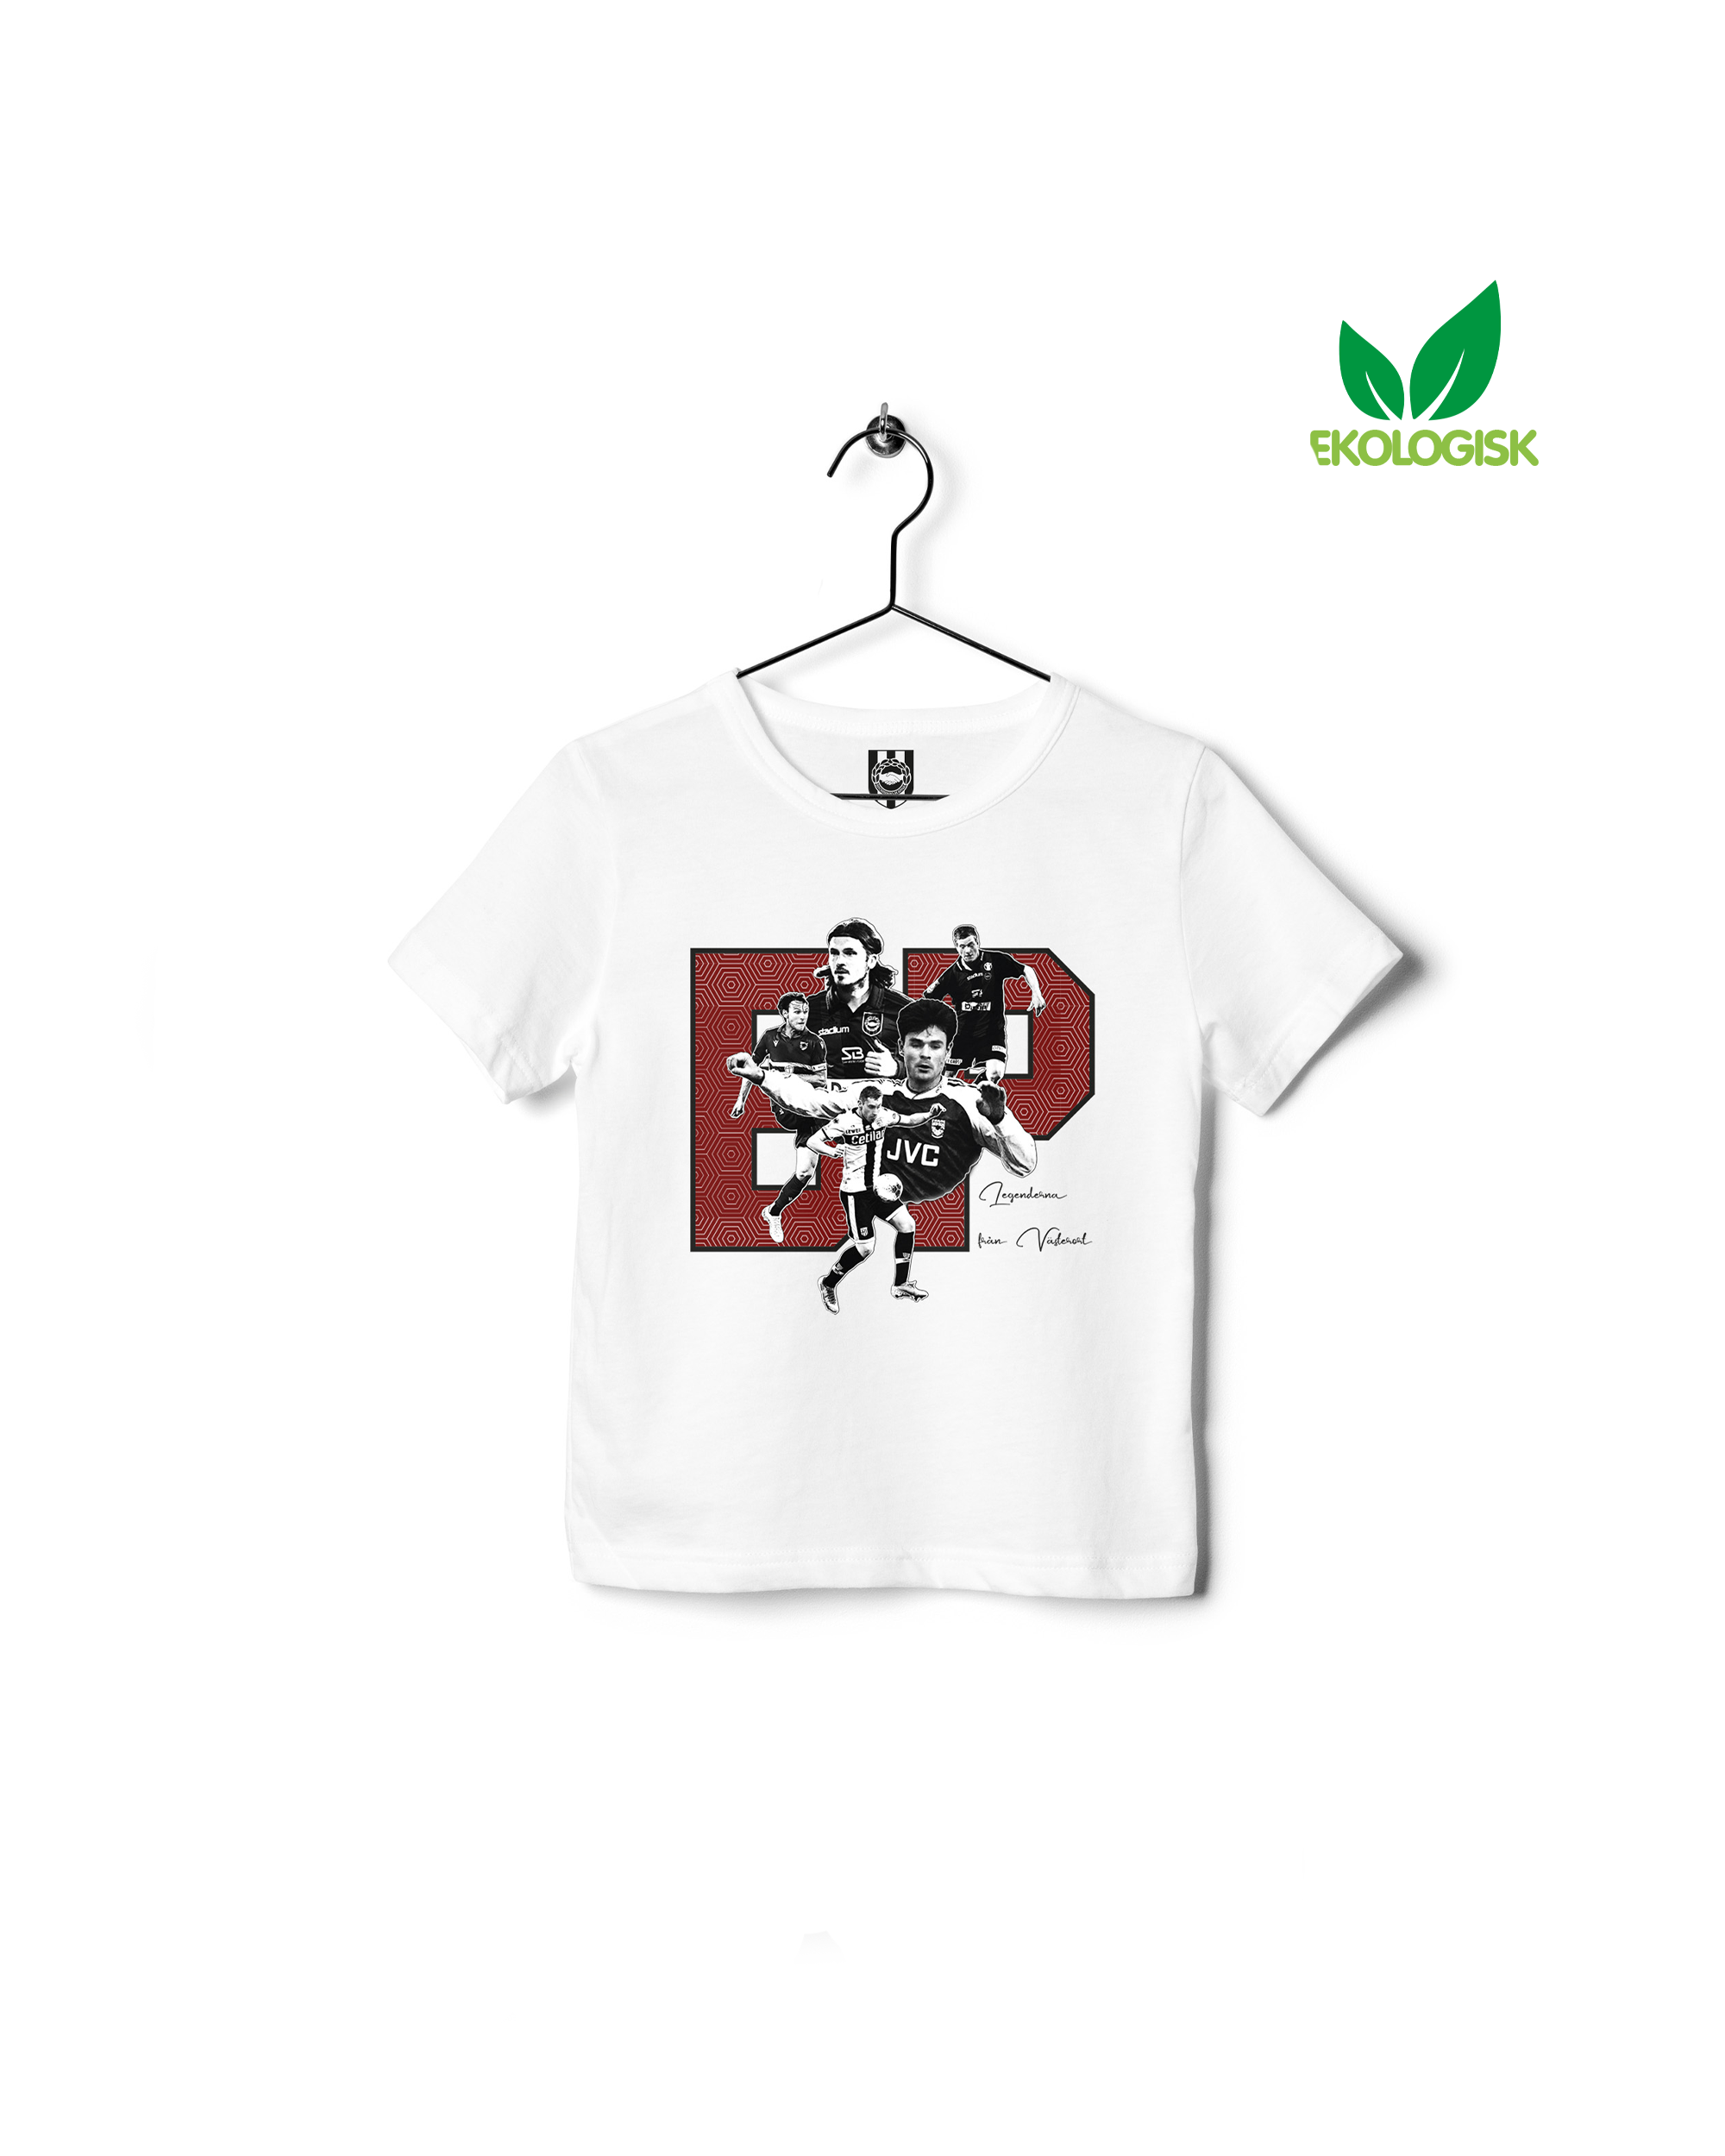 BP Legendarerna Västerort Tshirt - Junior